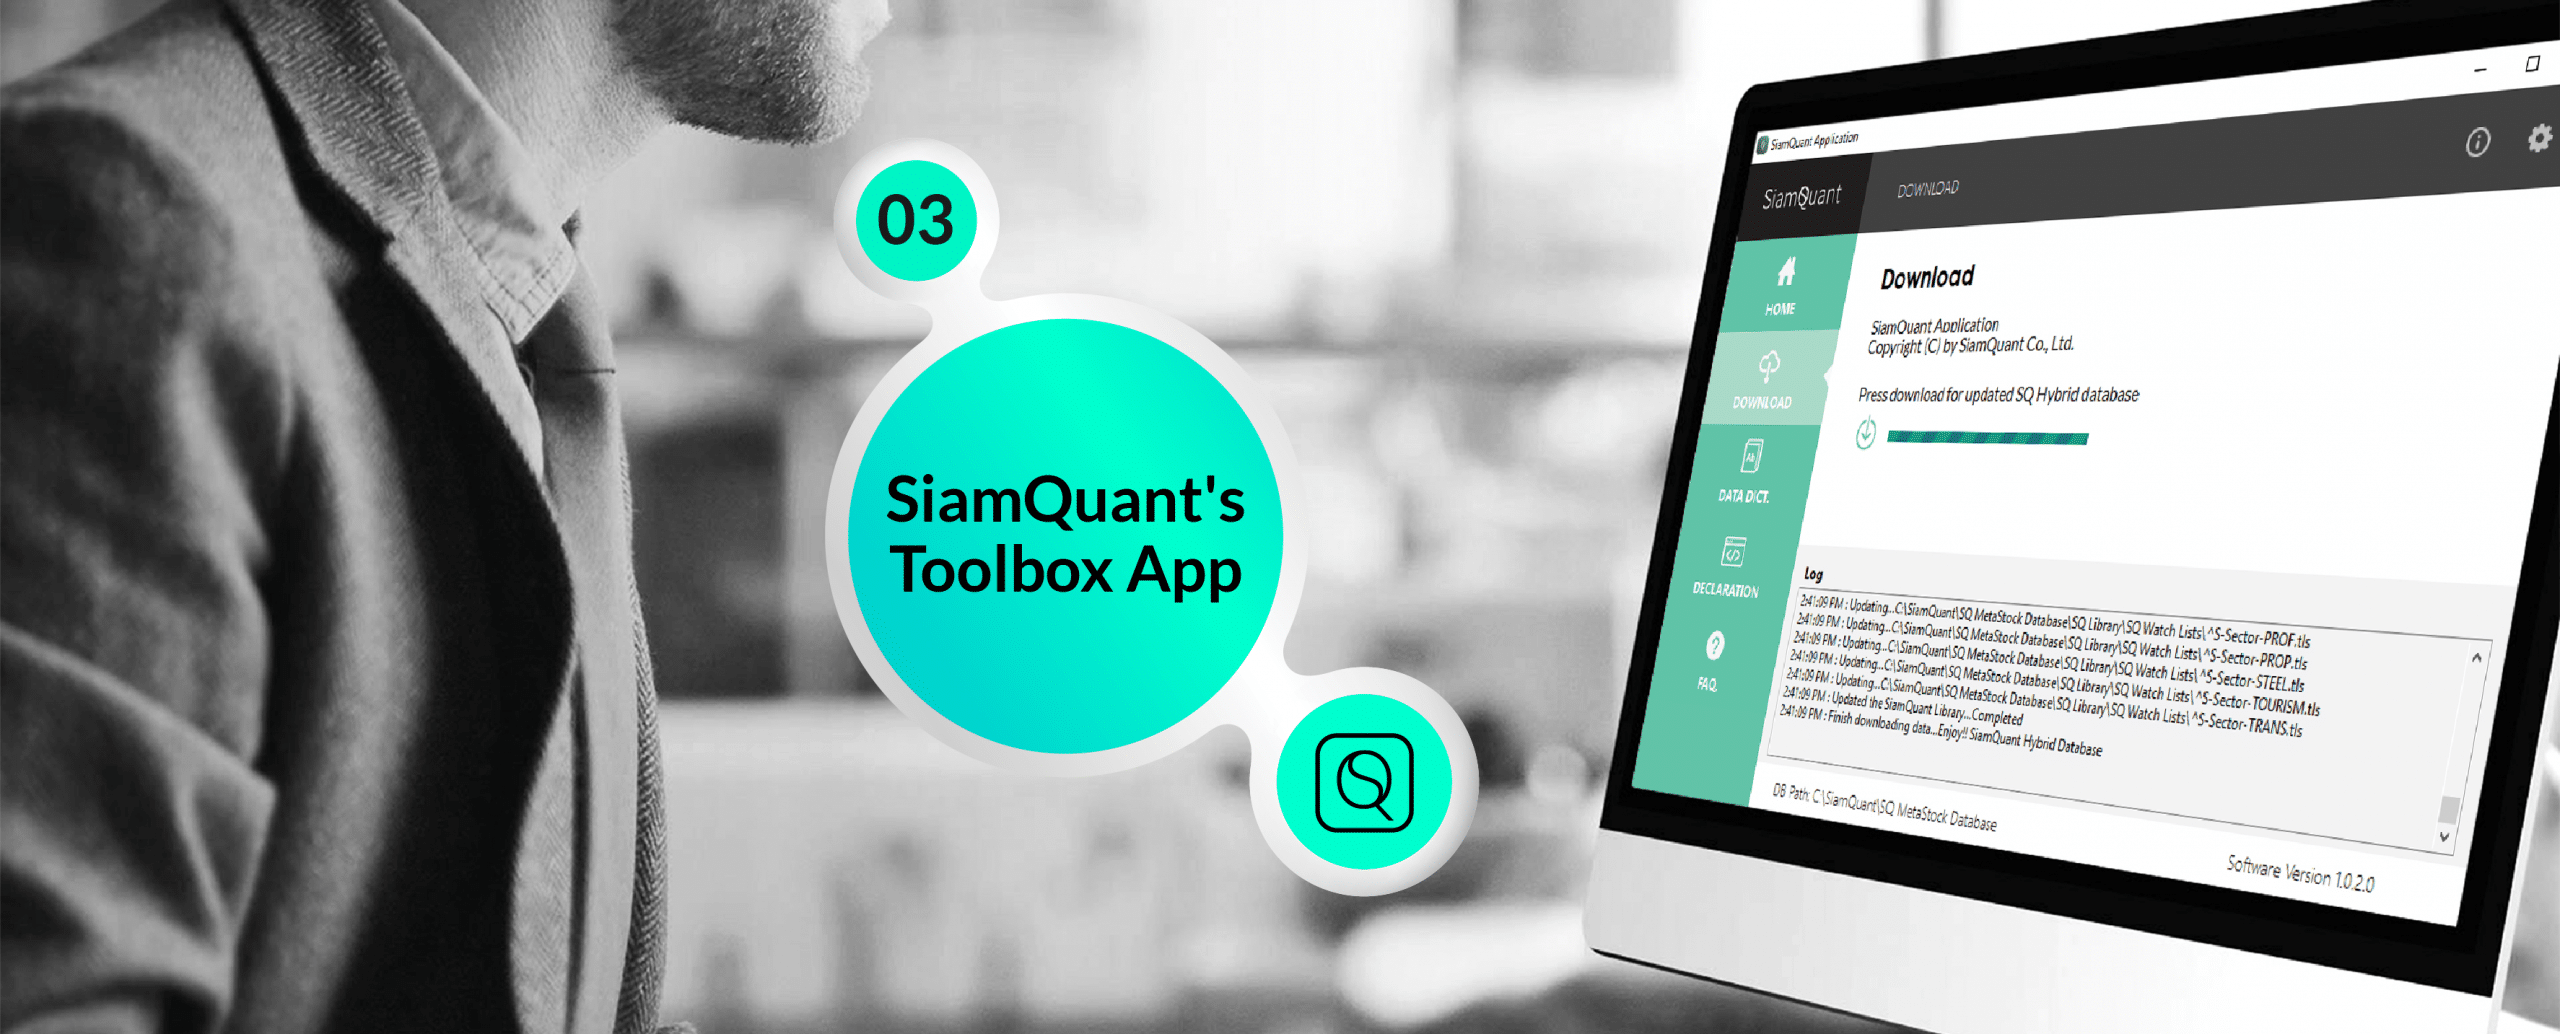 SiamQuant Toolbox Application